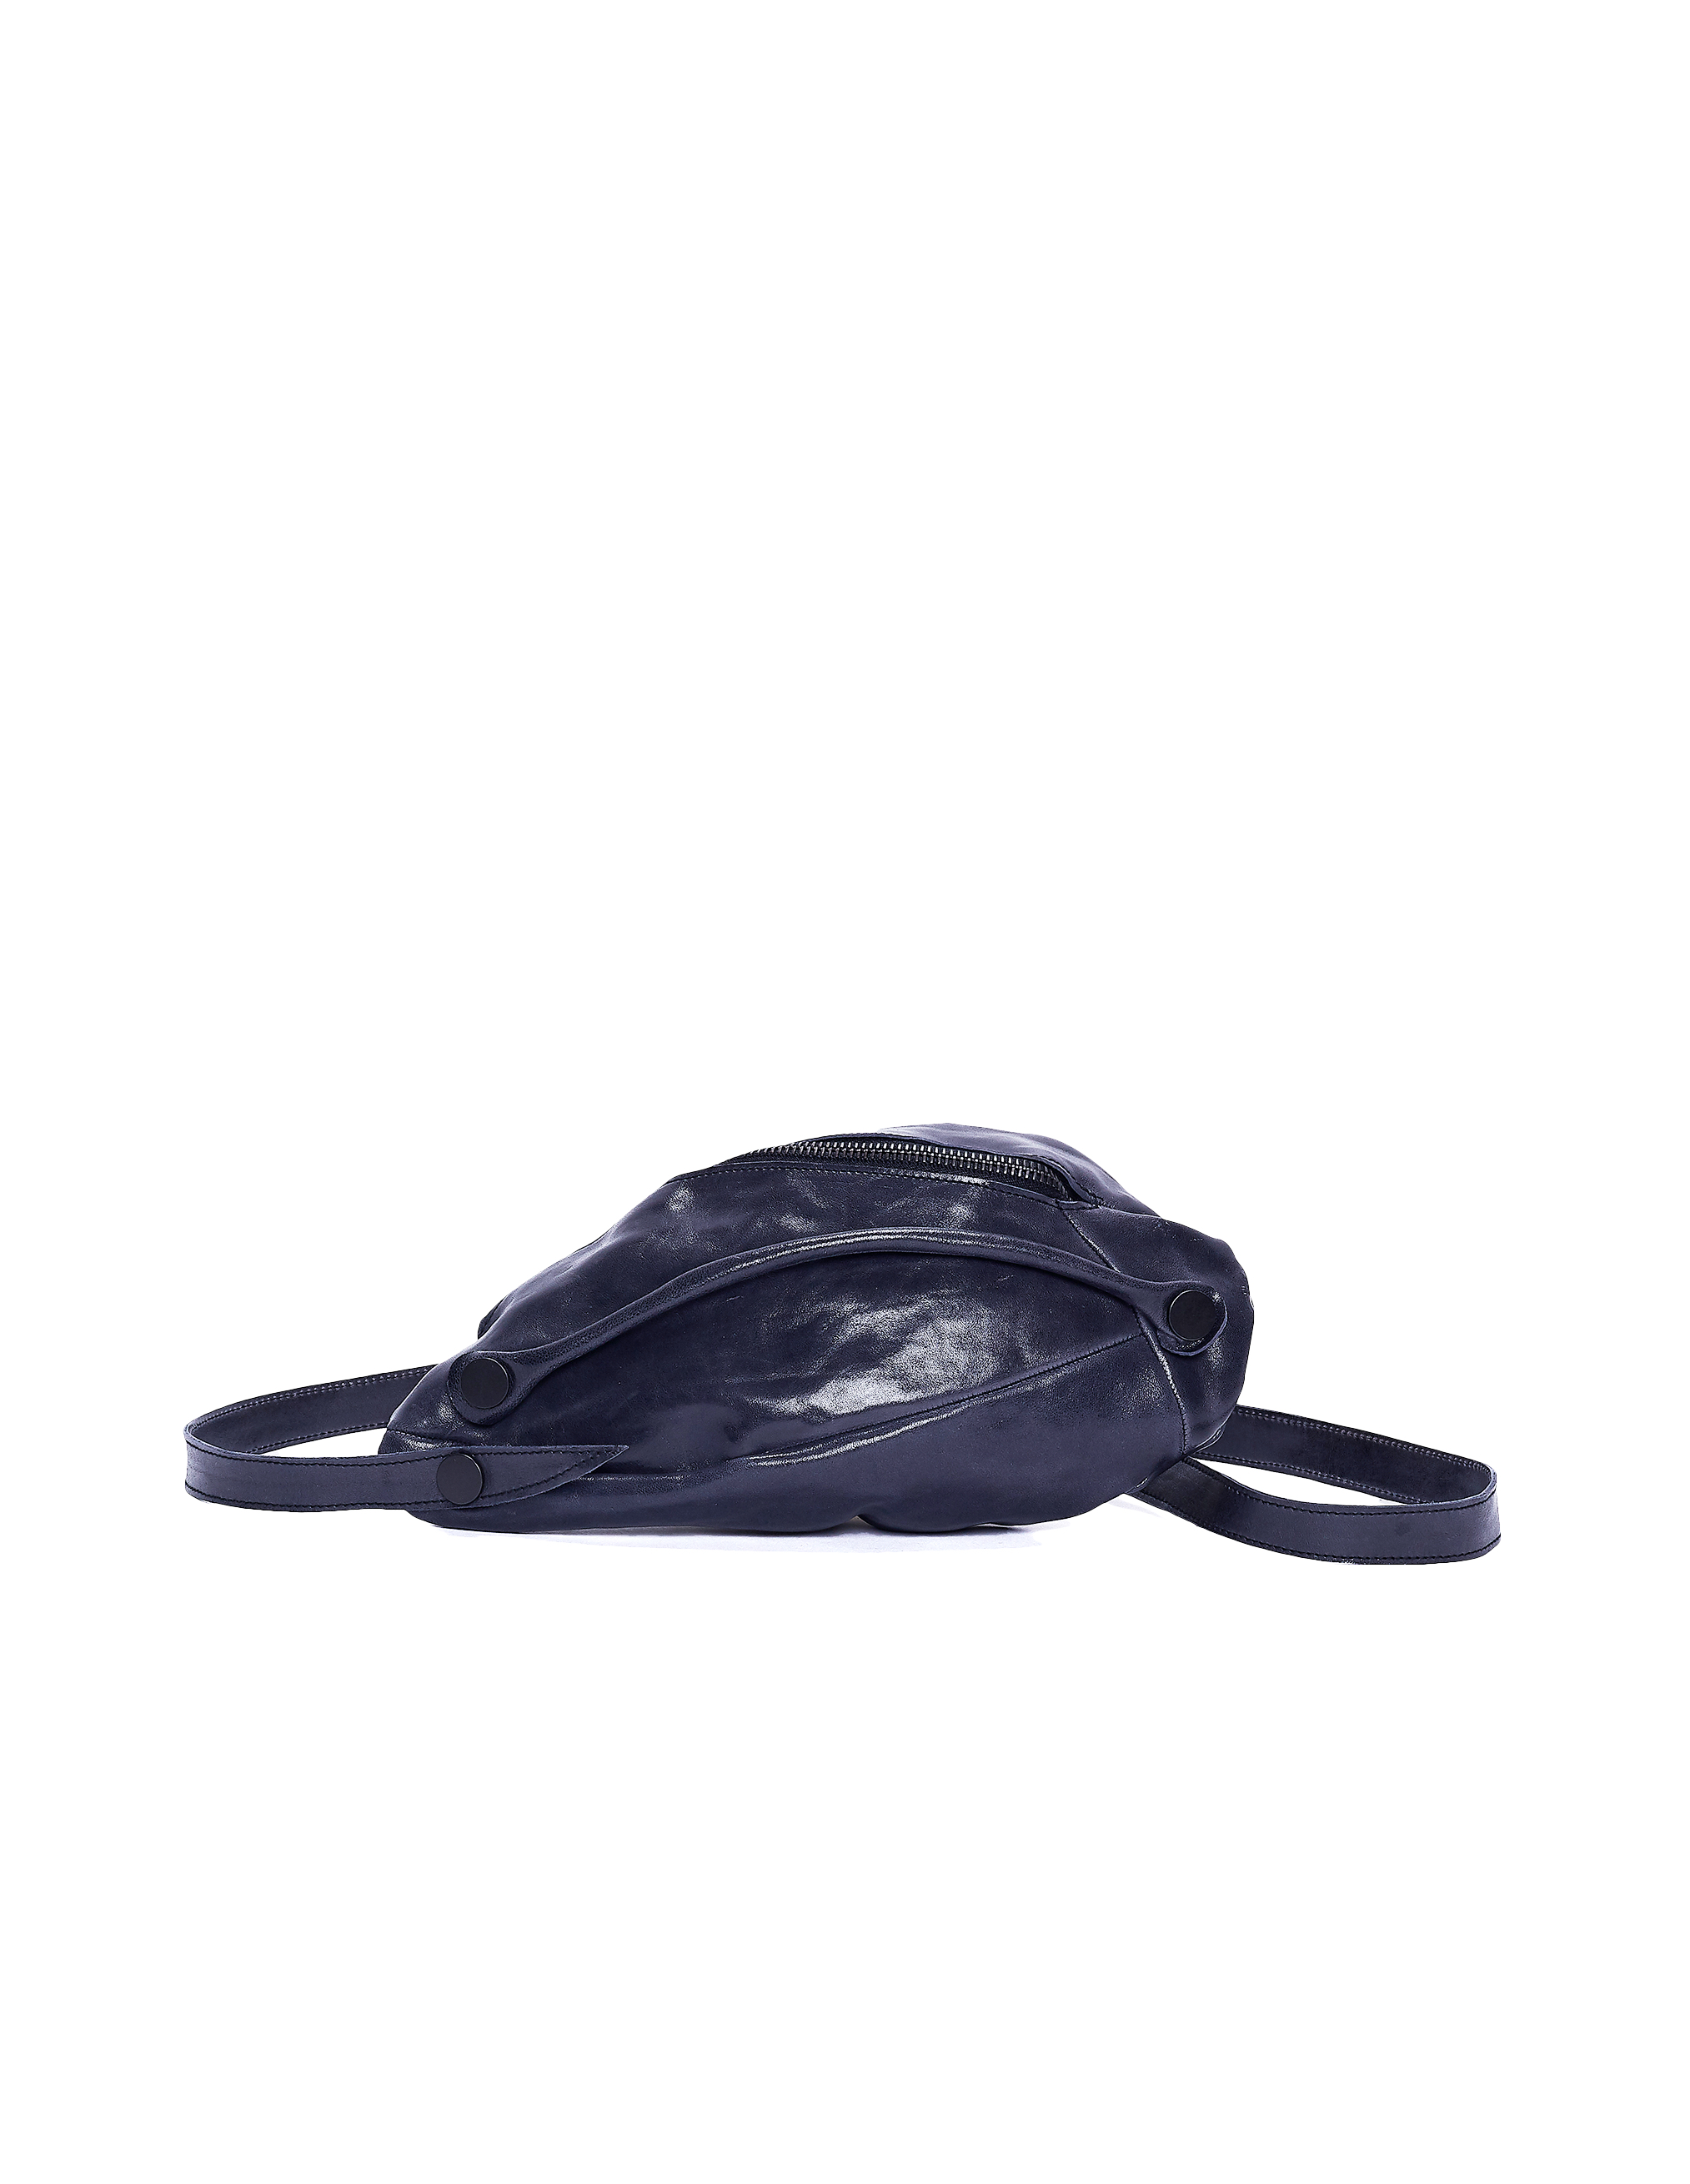 Leon Emanuel Blanck Navy Blue Leather Clutch